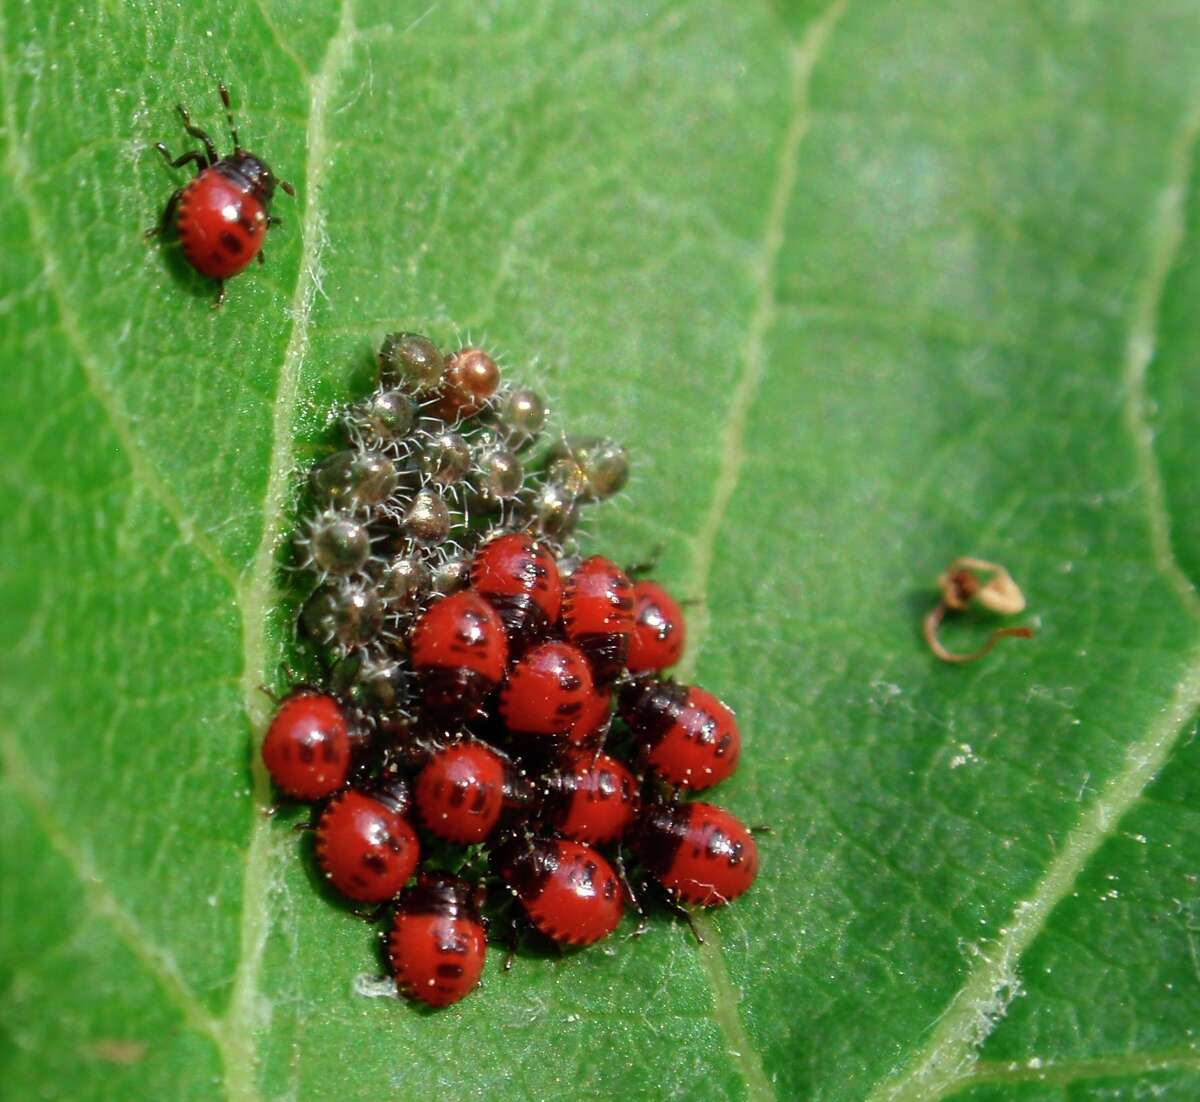 Stink bug (Podisus sp.) eggs and recently hatched immatures (nymphs).(Courtesyphoto/Nate Walton/MSU Extension)